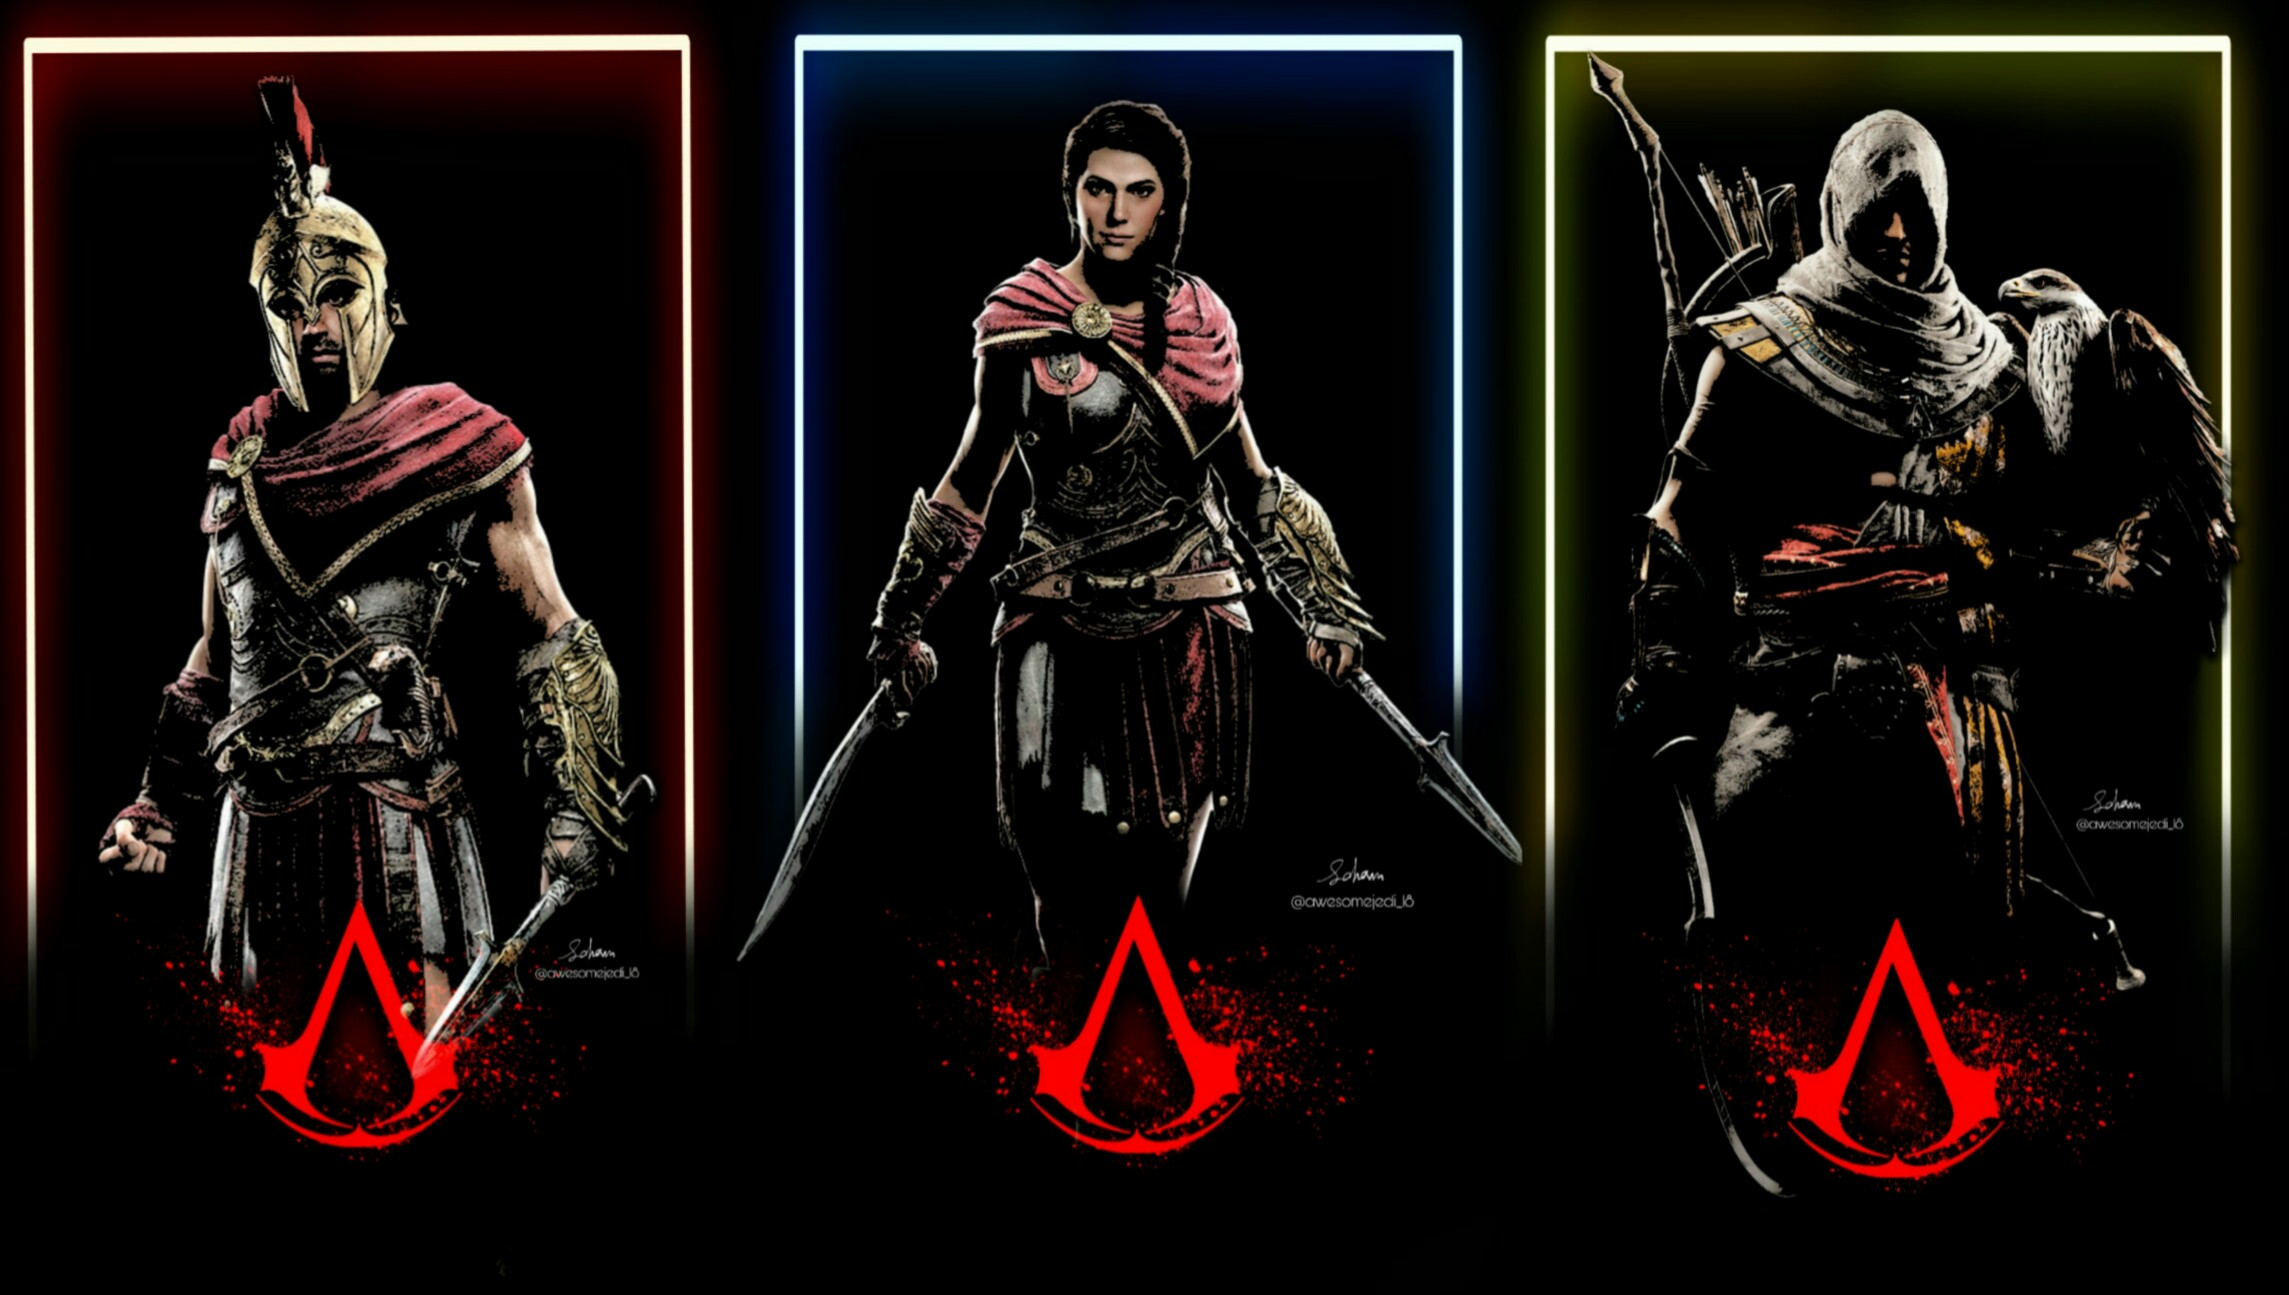 Wallpapers Assassins Creed Posted By Ethan Mercado